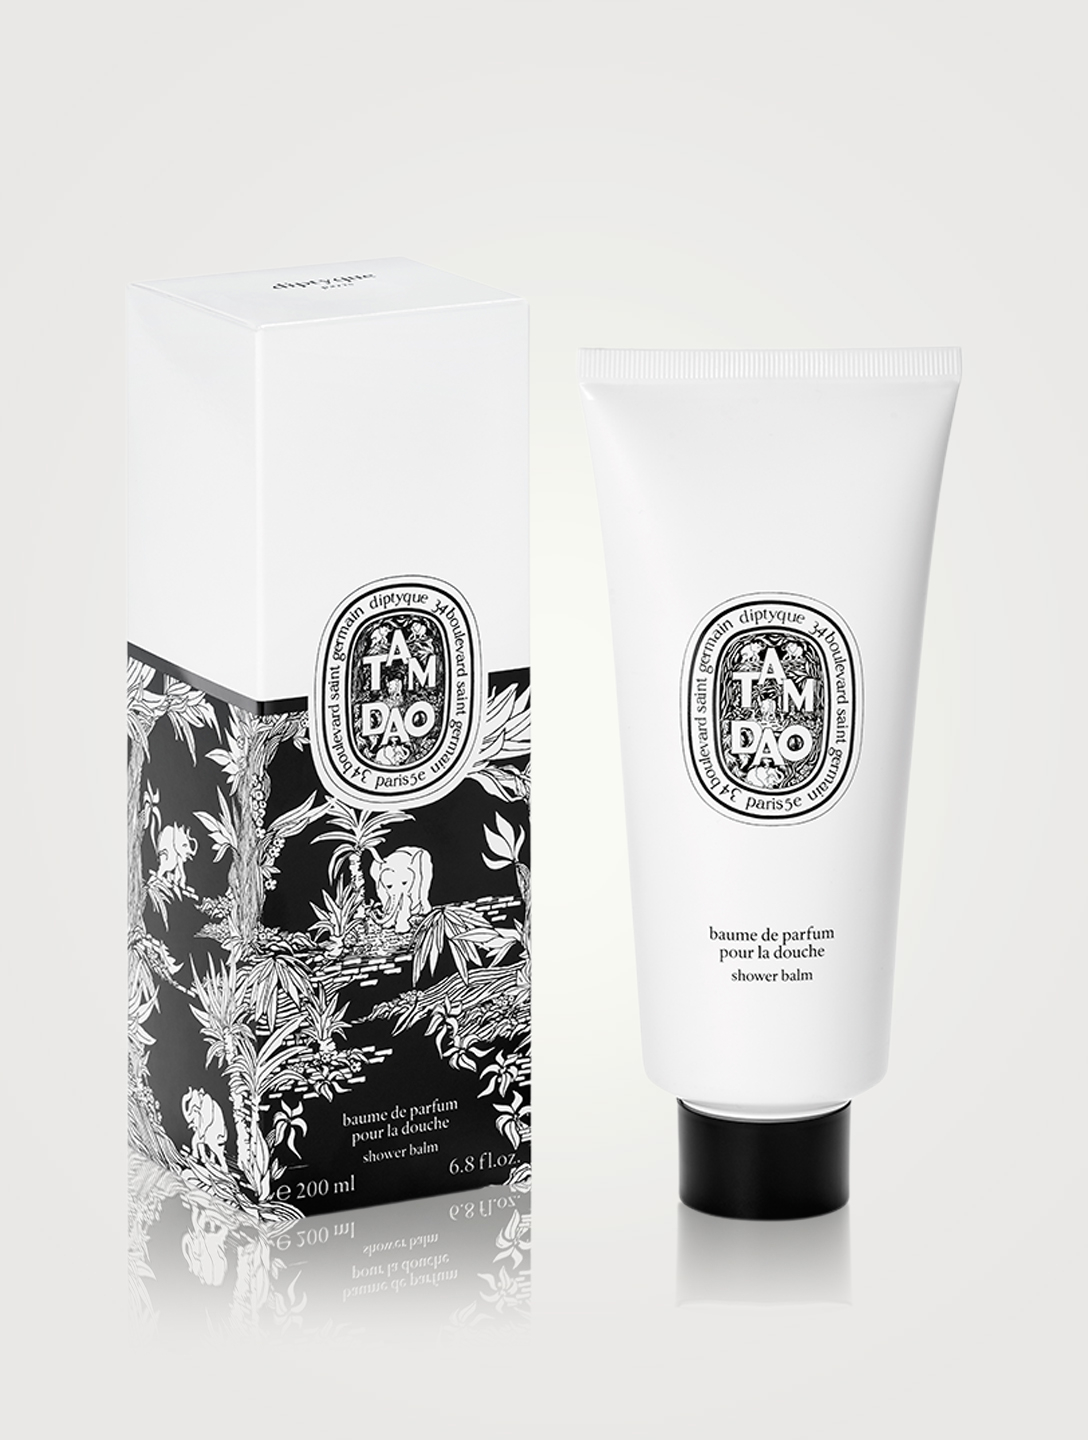 DIPTYQUE Tam Dao Shower Balm Beauty